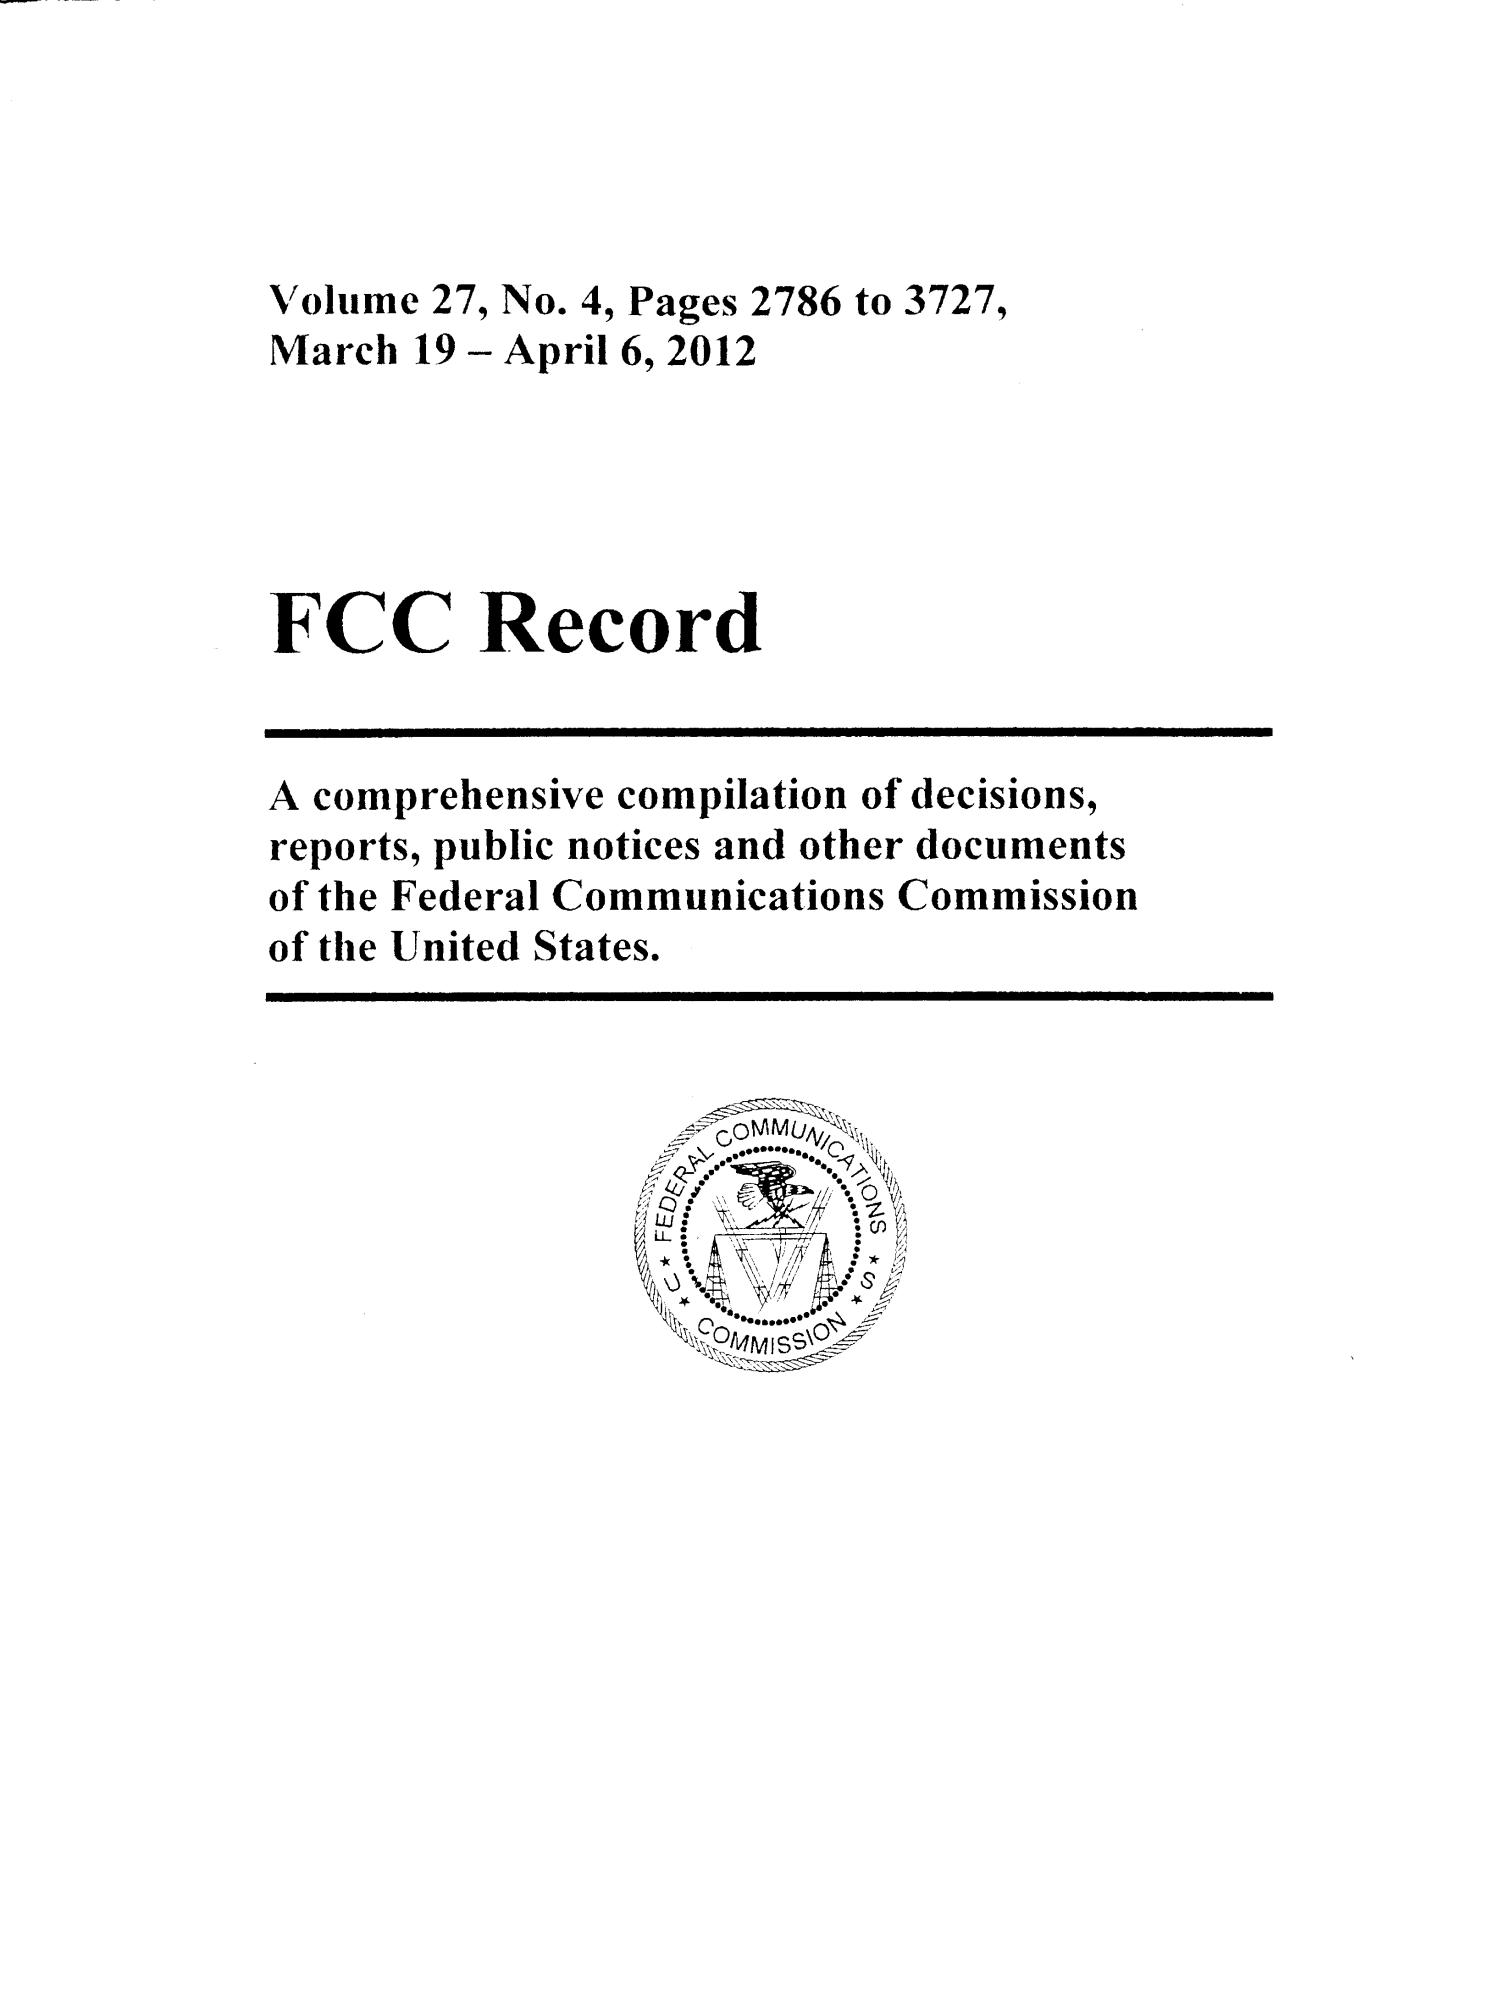 FCC Record, Volume 27, No. 4, Pages 2786 to 3727, March 19 - April 6, 2012                                                                                                      Front Cover